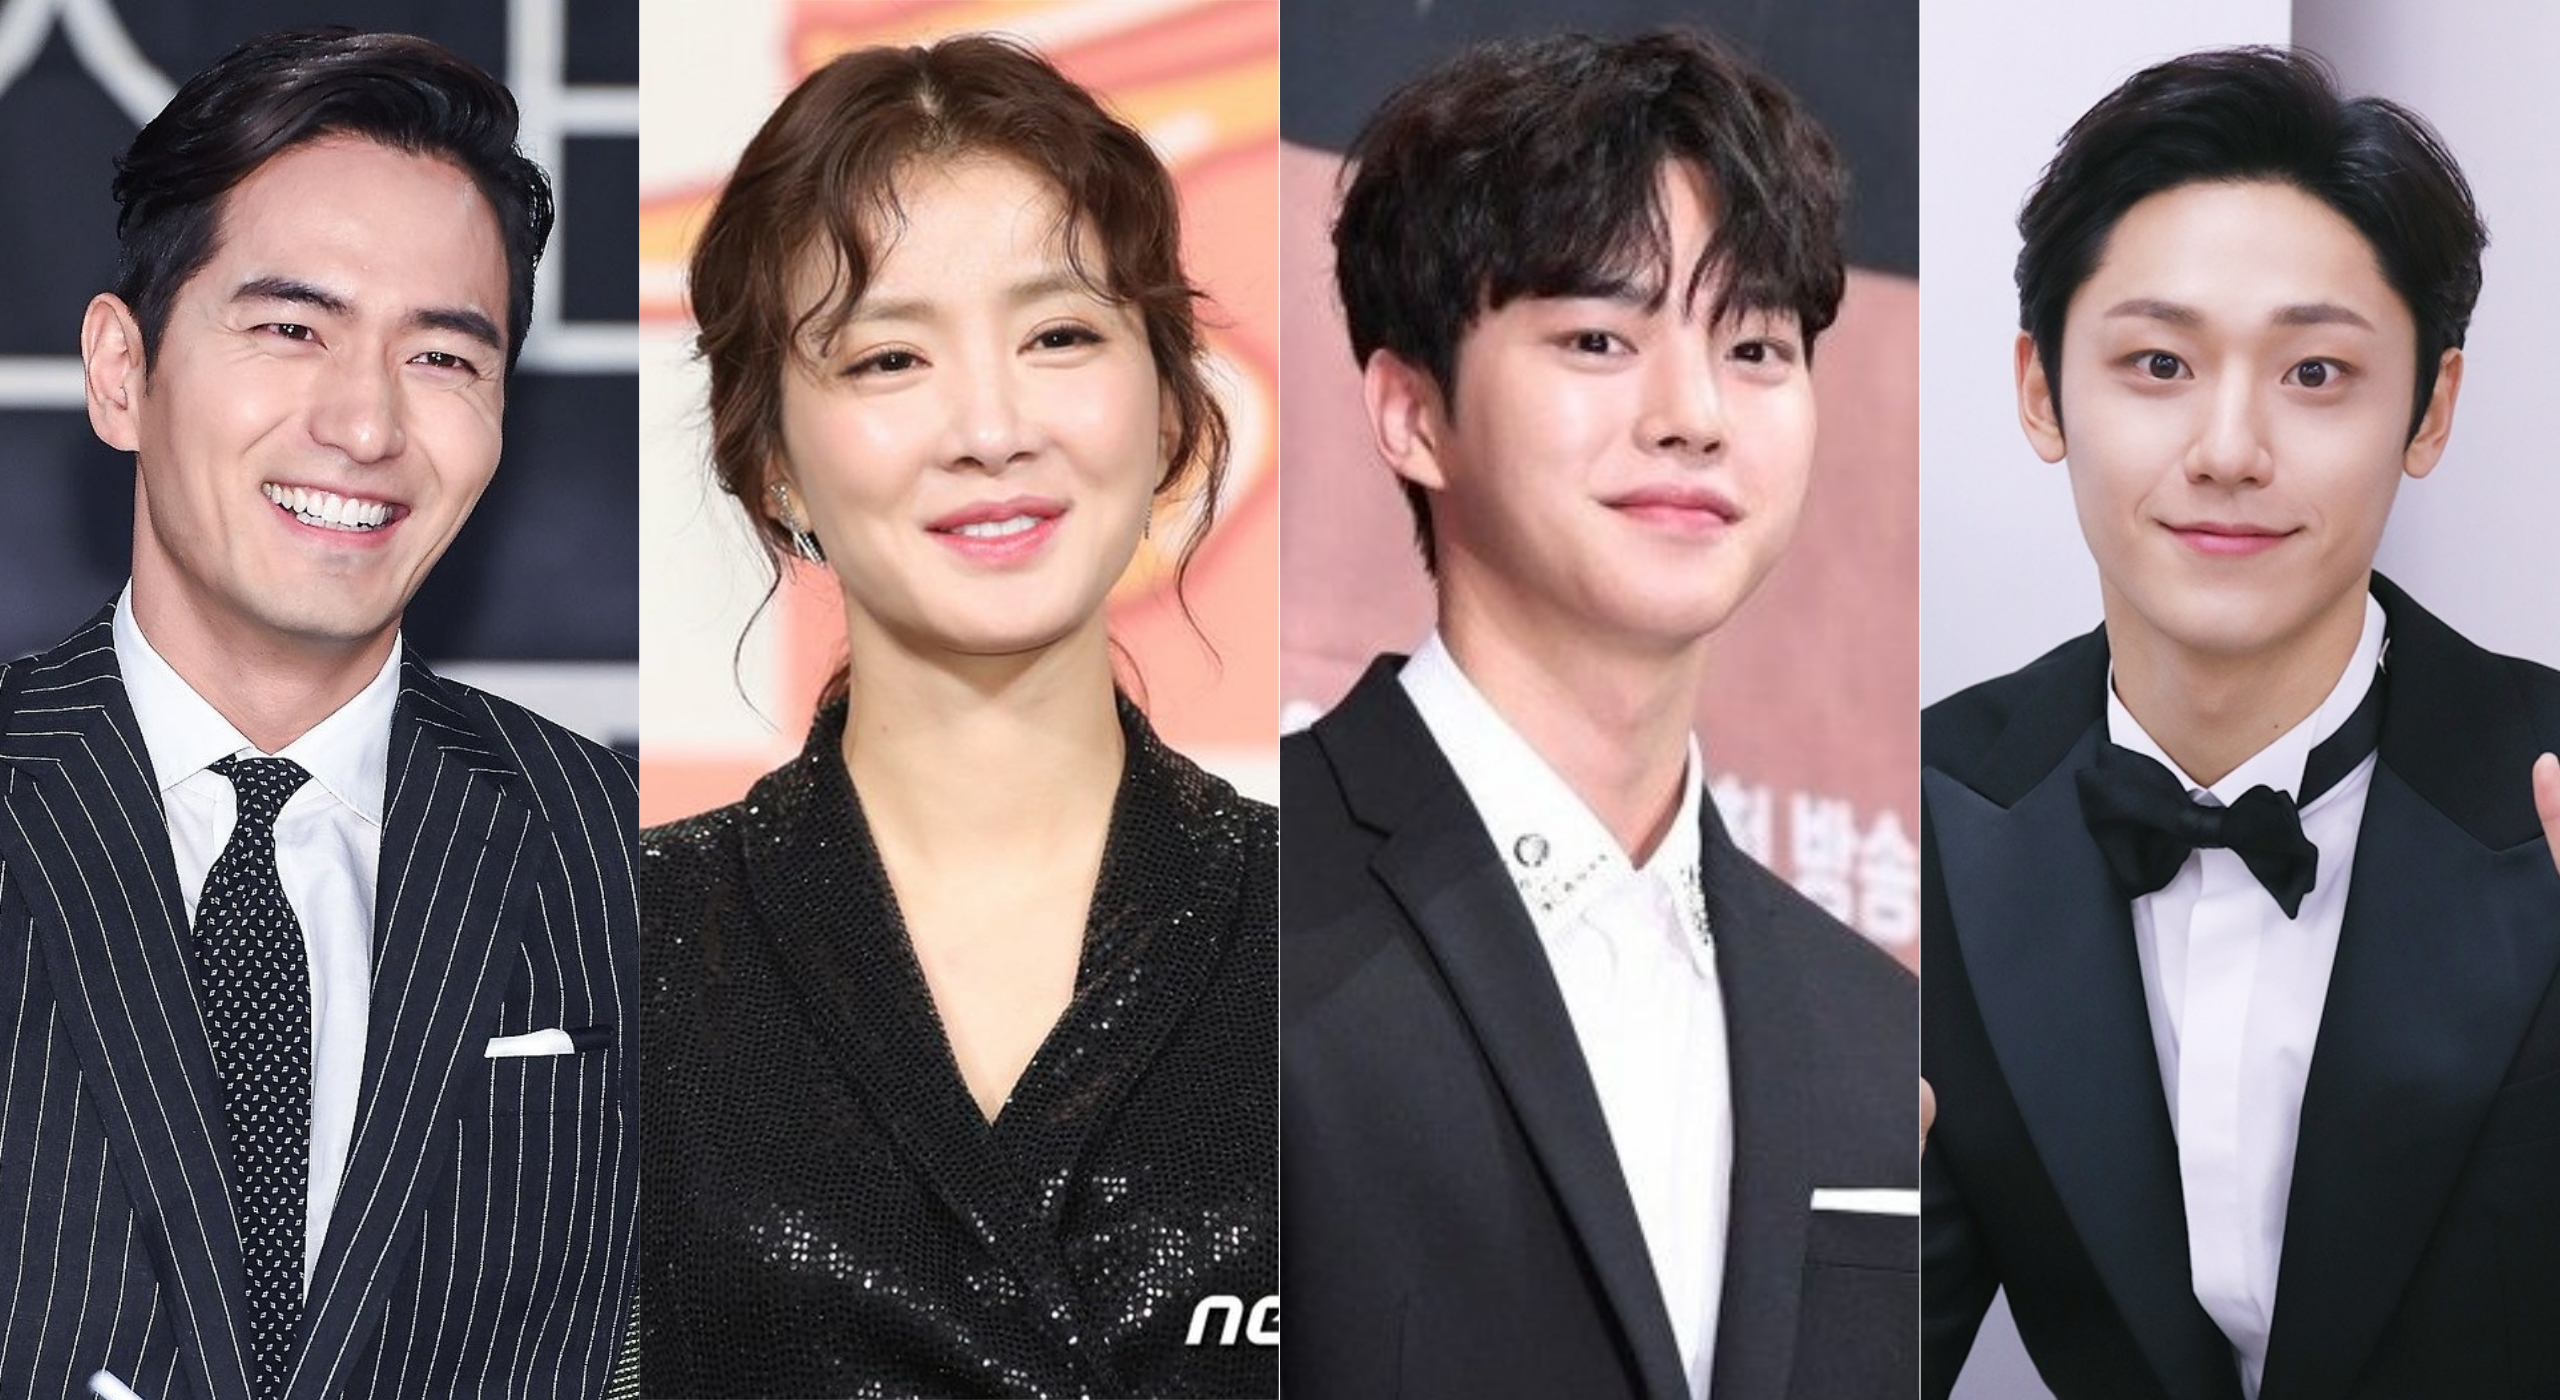 Netflix confirms Lee Jin-wook, Lee Si-young, Song Kang, Lee Do-hyun in new  drama by Mr. Sunshine PD – AHJUMMAMSHIES